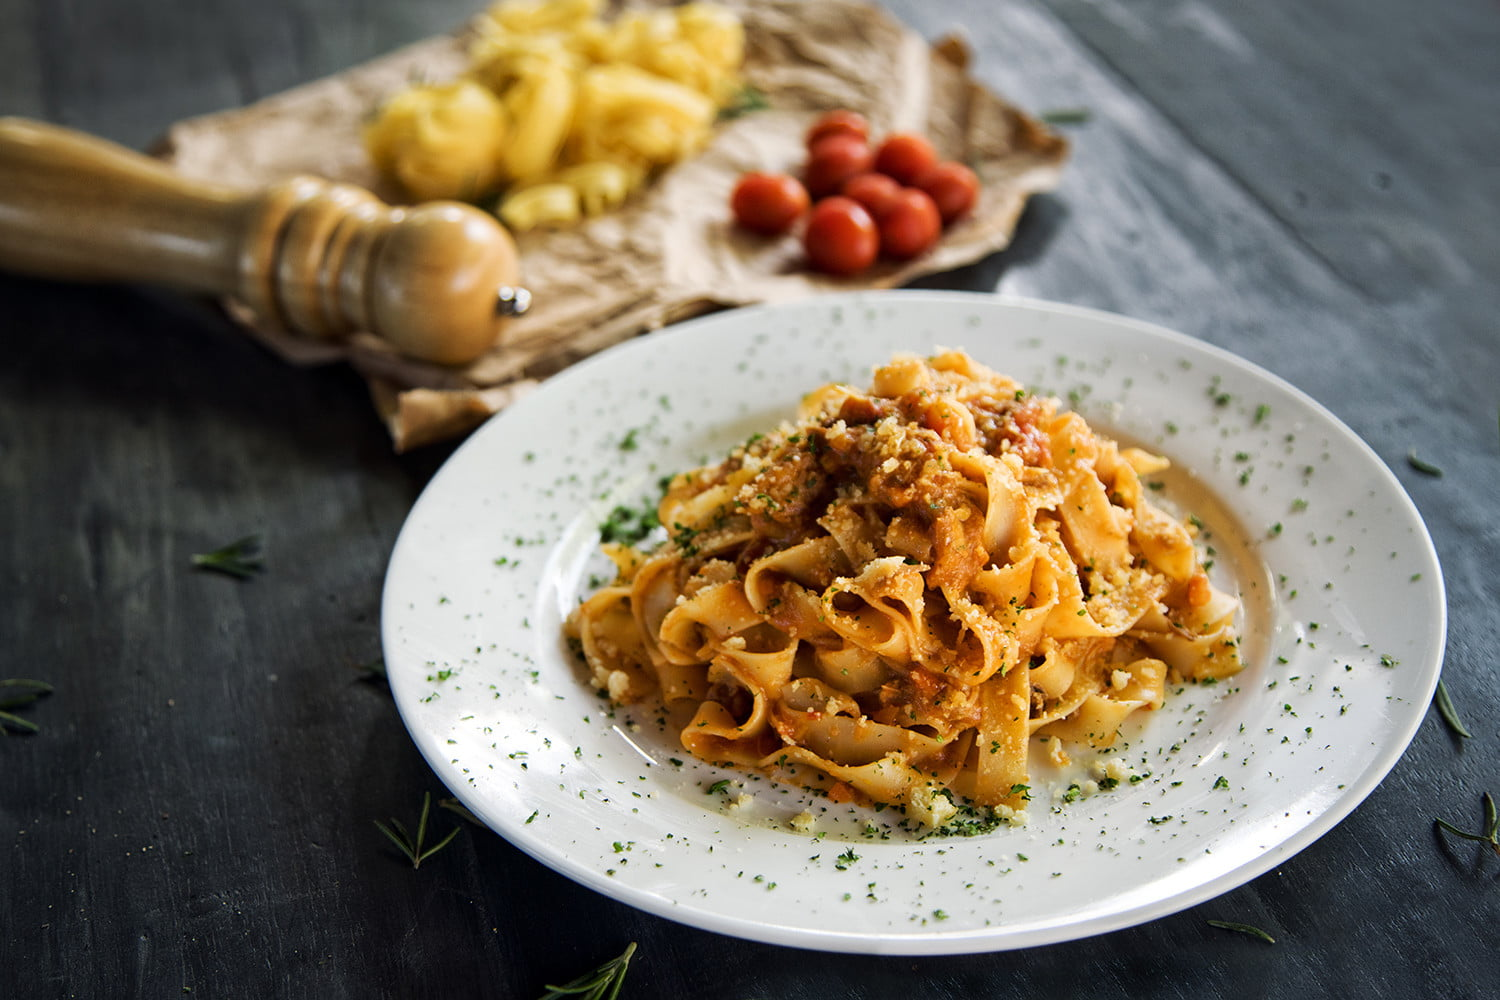 5 Easy Ways To Elevate Your Pasta Sauce